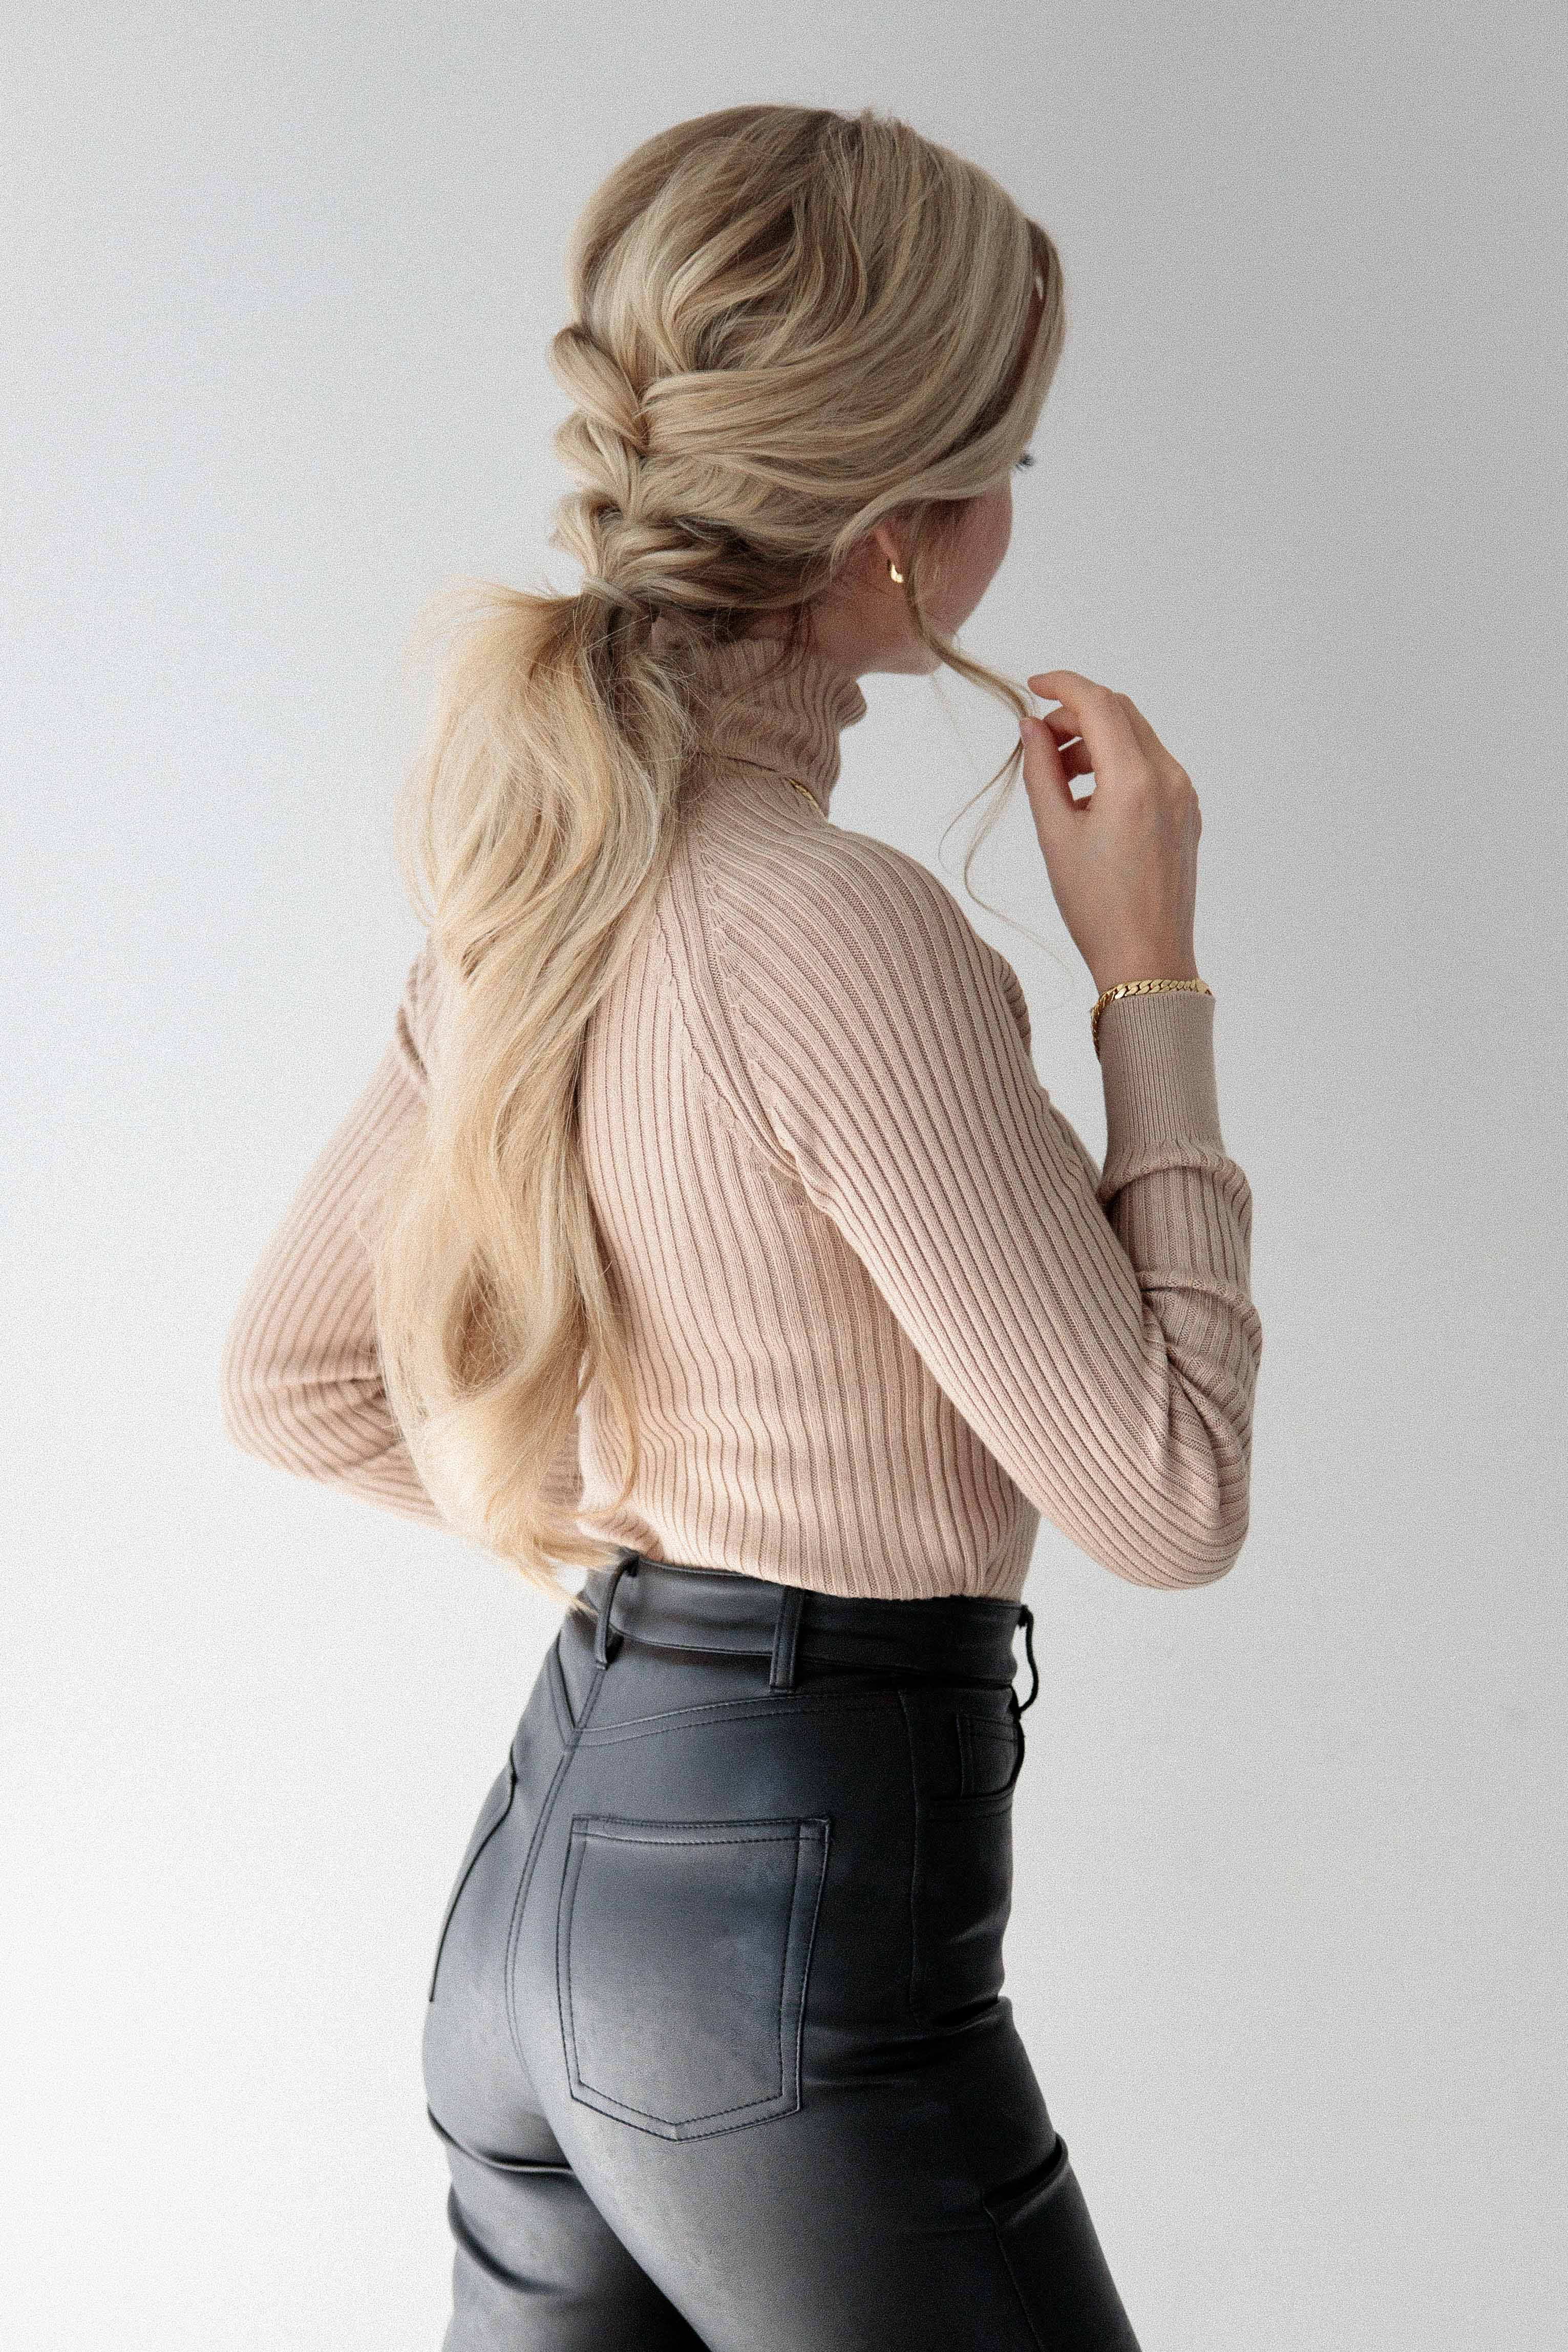 3 EASY FALL HAIRSTYLES that you must try!